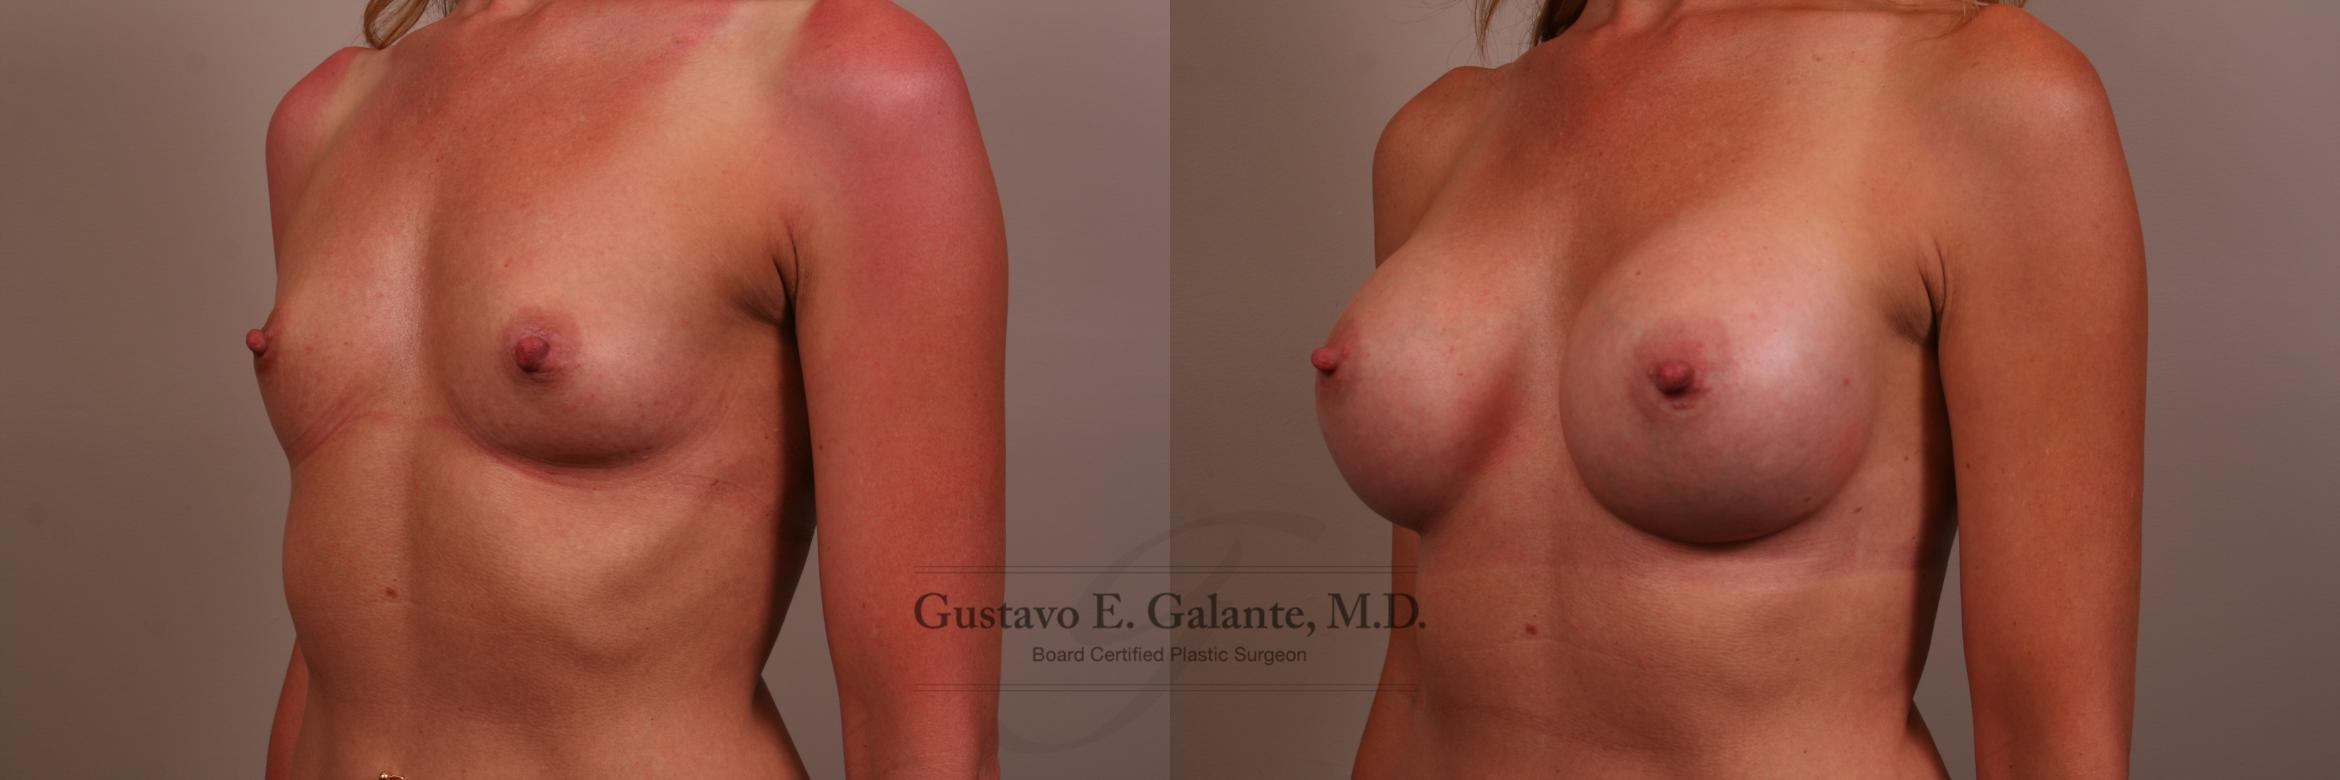 Breast Augmentation Case 136 Before & After View #2 | Valparaiso & Schererville, IN | Gustavo E. Galante, MD